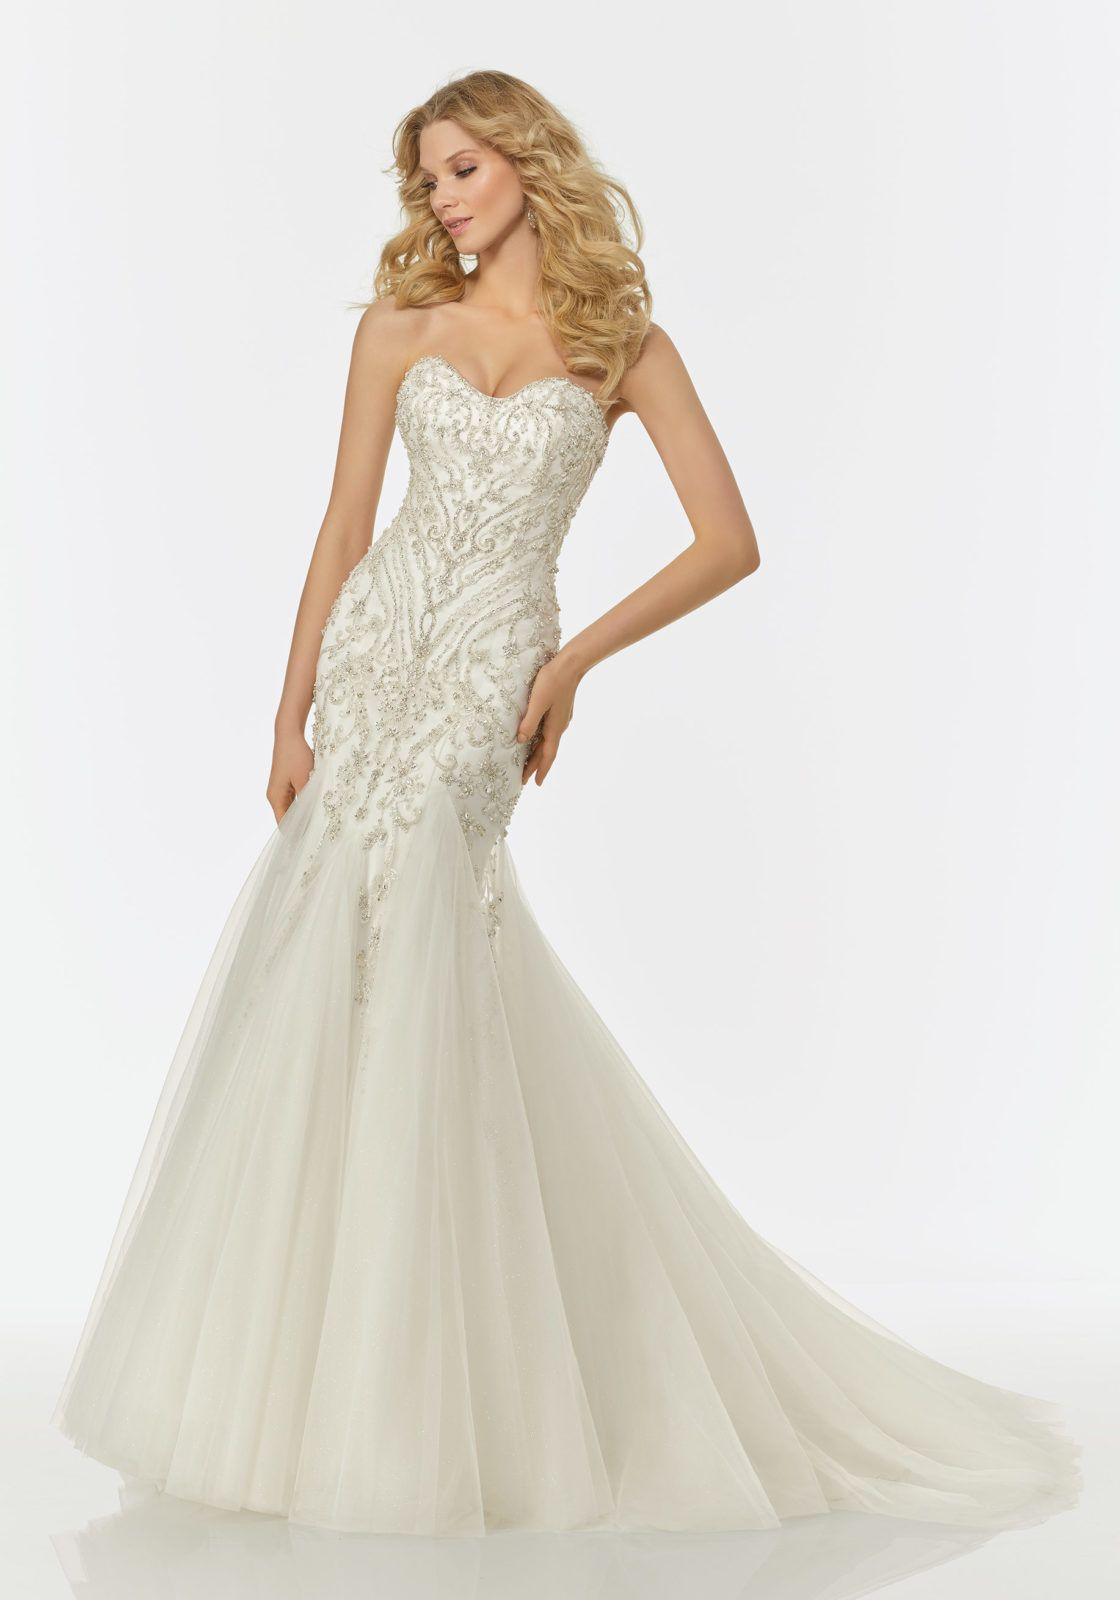 Krystal by Randy Fenoli Wedding dresses kleinfeld